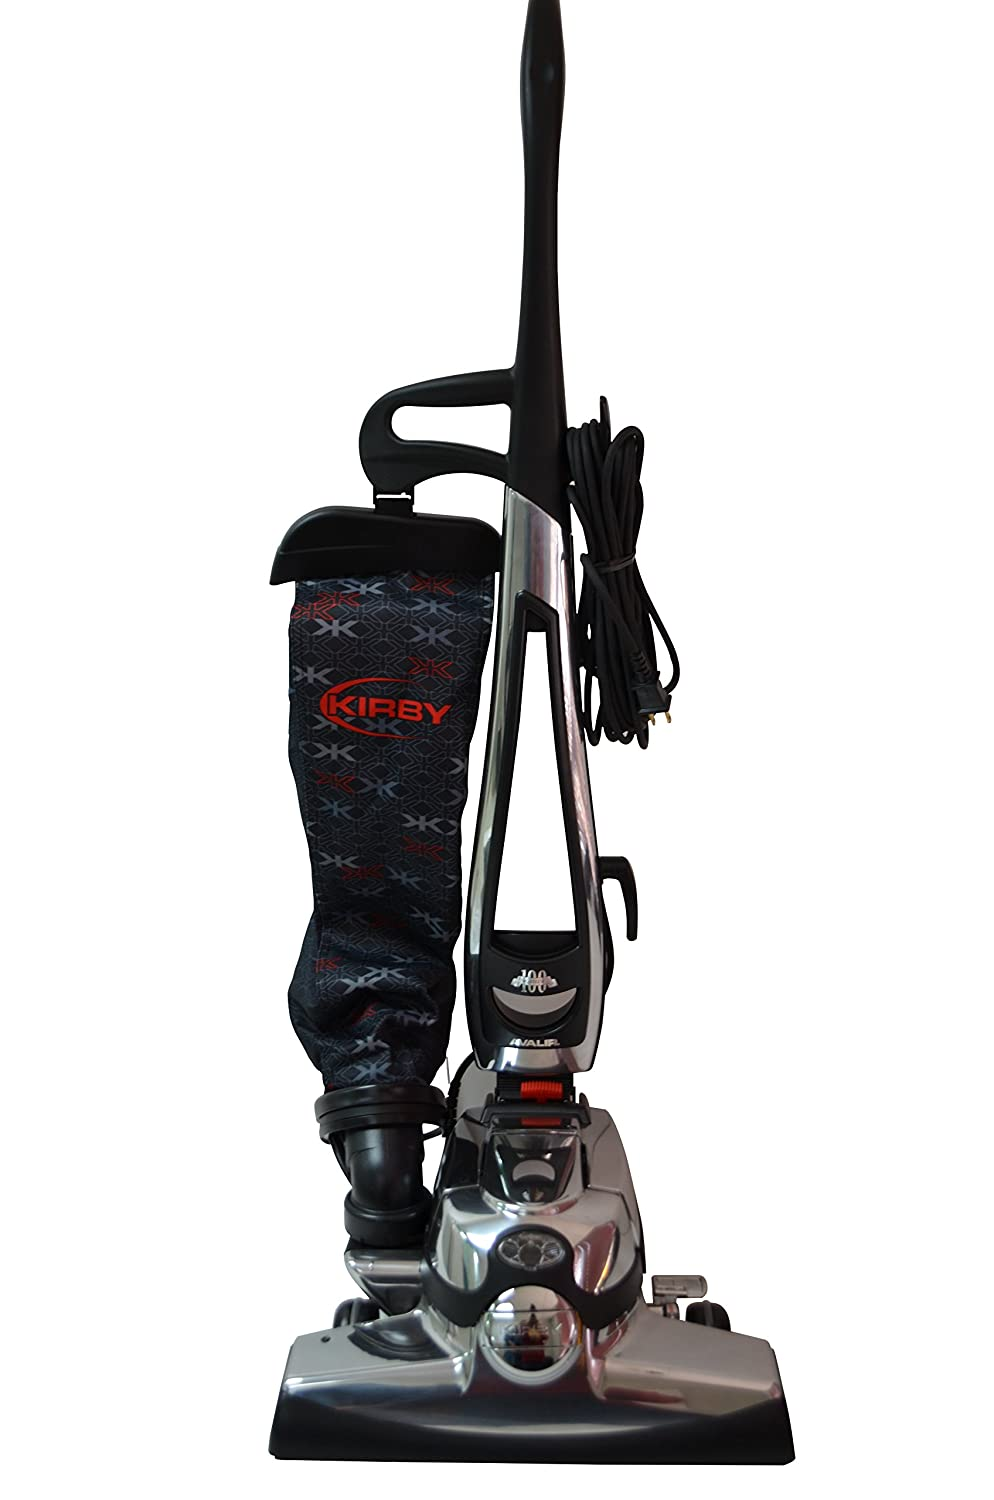 Compare Vacuum Cleaners Specs Amp Features And Buy Buysabi Com